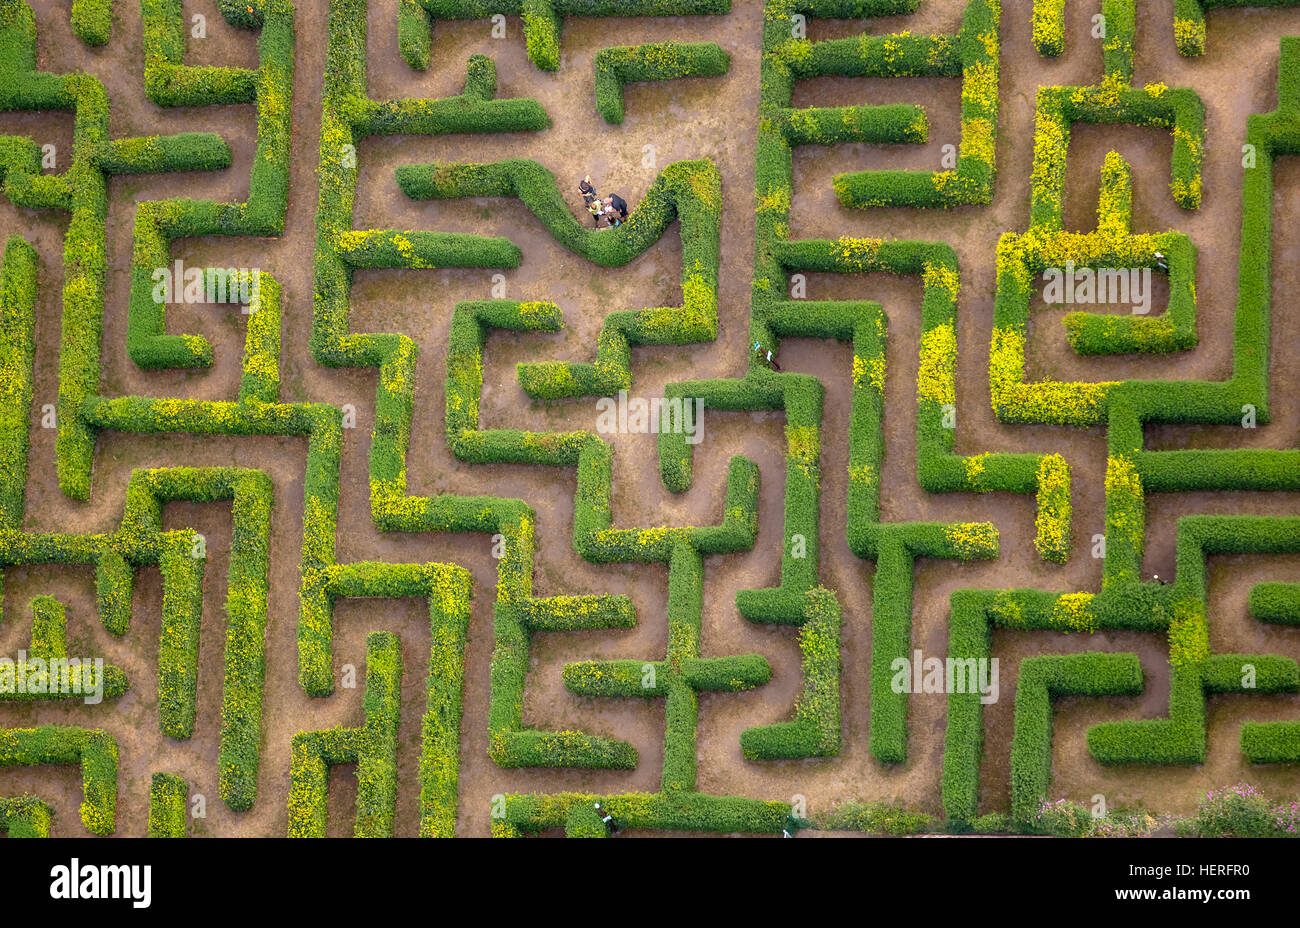 Aerial view, hedge maze, labyrinth, Bollewick, Mecklenburg-Western Pomerania, Germany Stock Photo